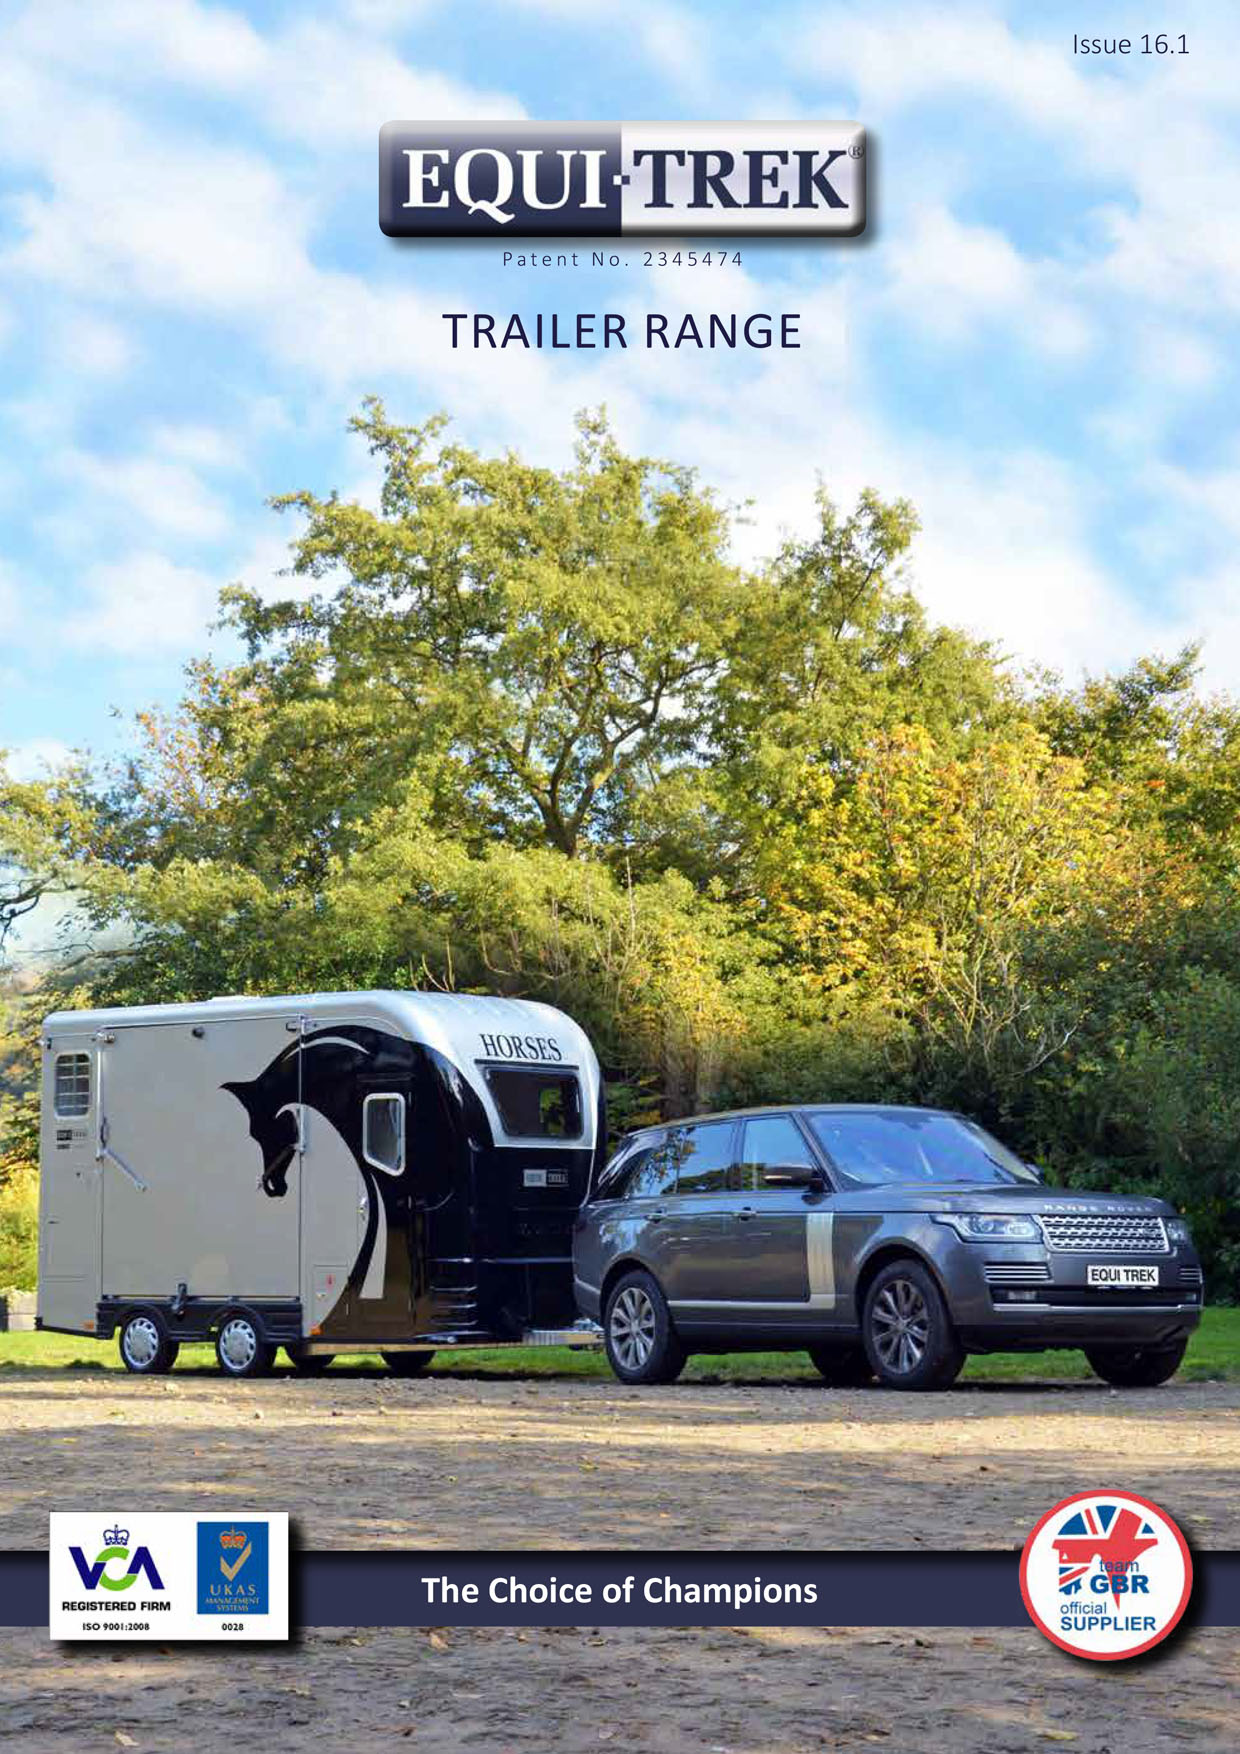 Download Information Wiring Diagram For Ifor Williams Trailer Free Brochure